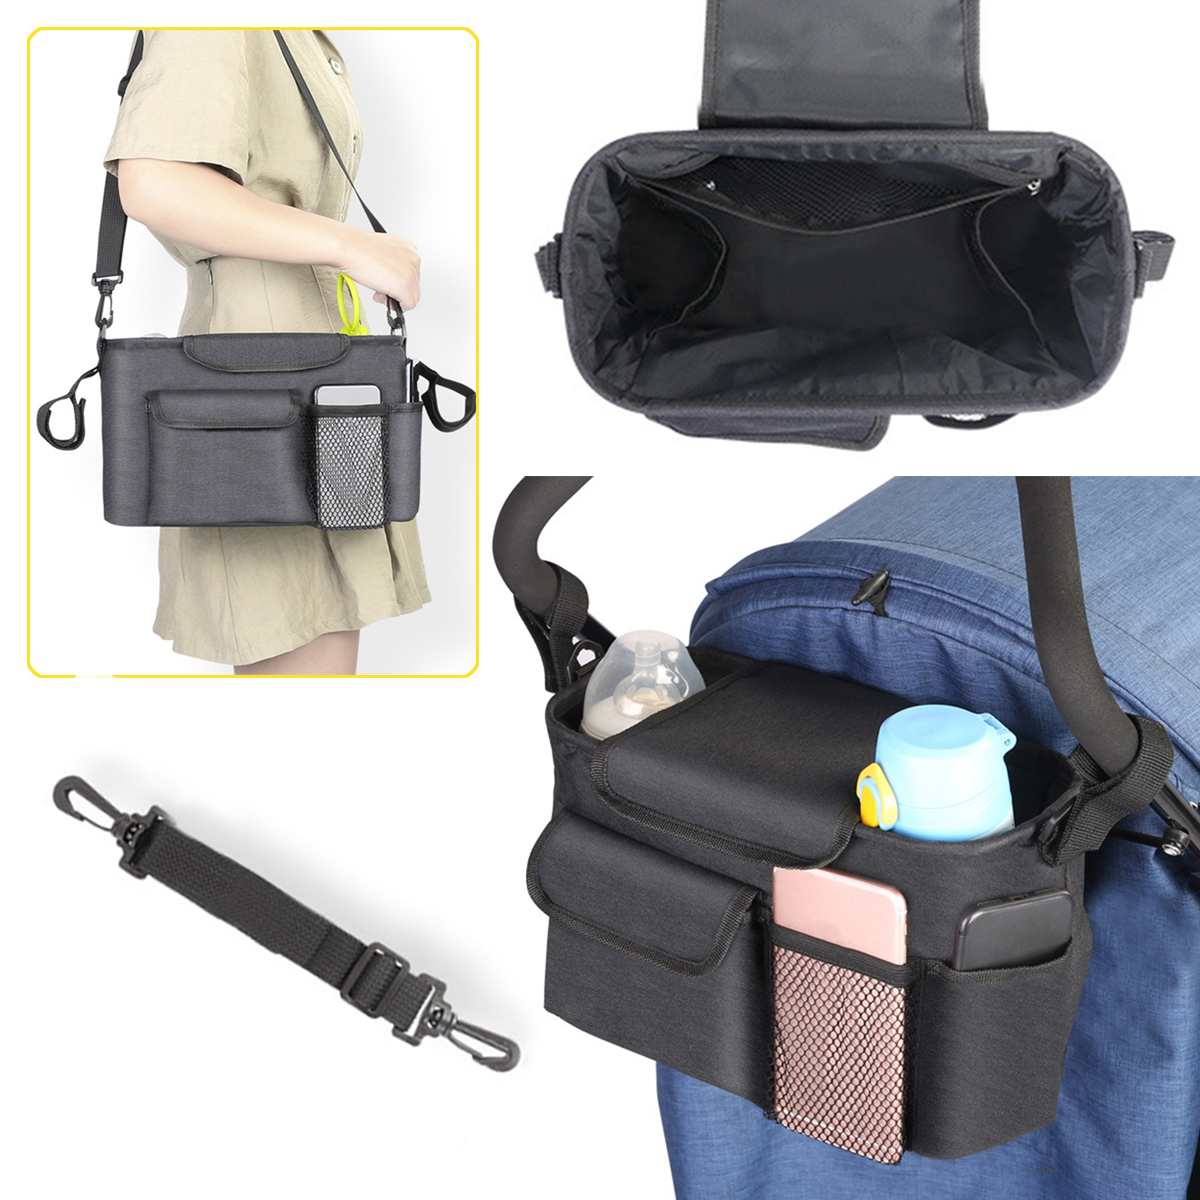 Diaper Maternity Bag For Mother Mom Hanken Girl Wheelchairs Suitcase Nappy Trolley Changing Bag Stroller Maternity Baby Bag